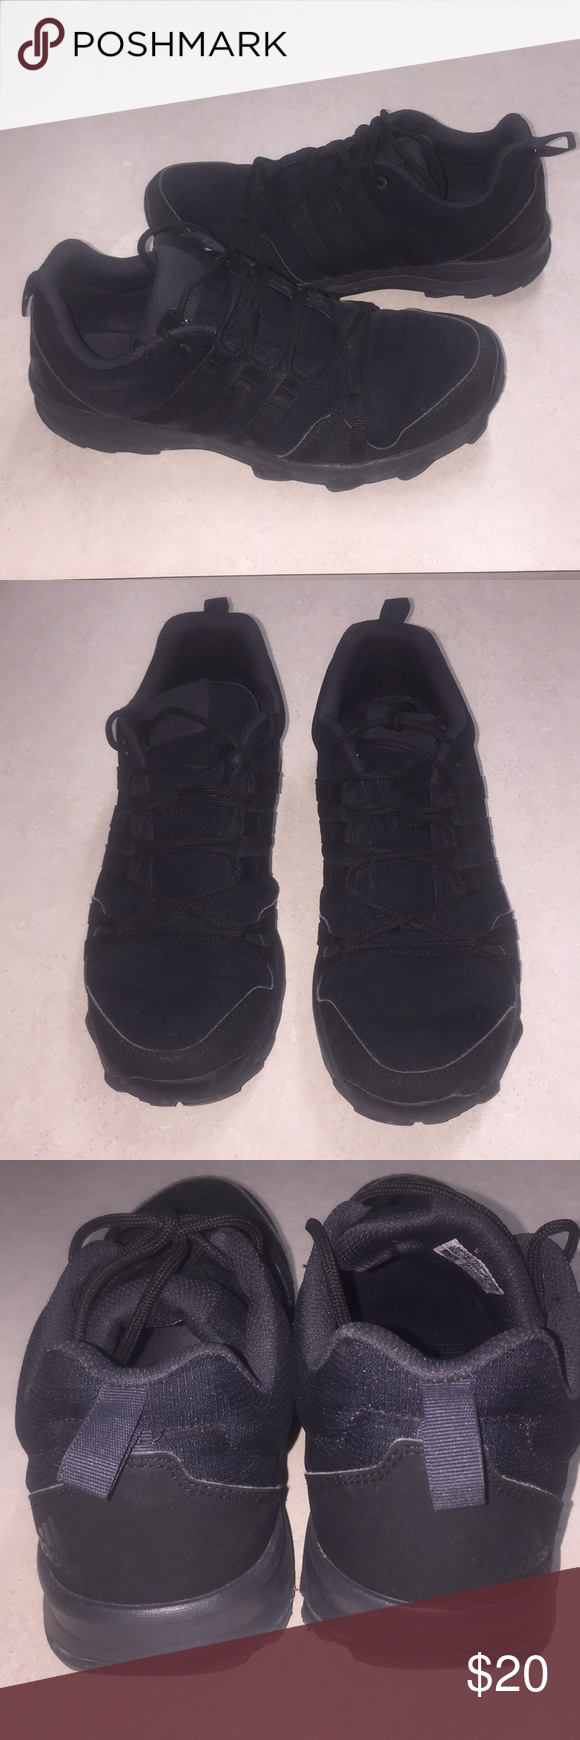 278509634362 ADIDAS TRAXION Terrex Tivid Sneaker (Men s) 9 1 2 ADIDAS TRAXION Terrex  Tivid Sneaker (Men s) 9 1 2. Great condition. EUC. Color is solid black  adidas Shoes ...